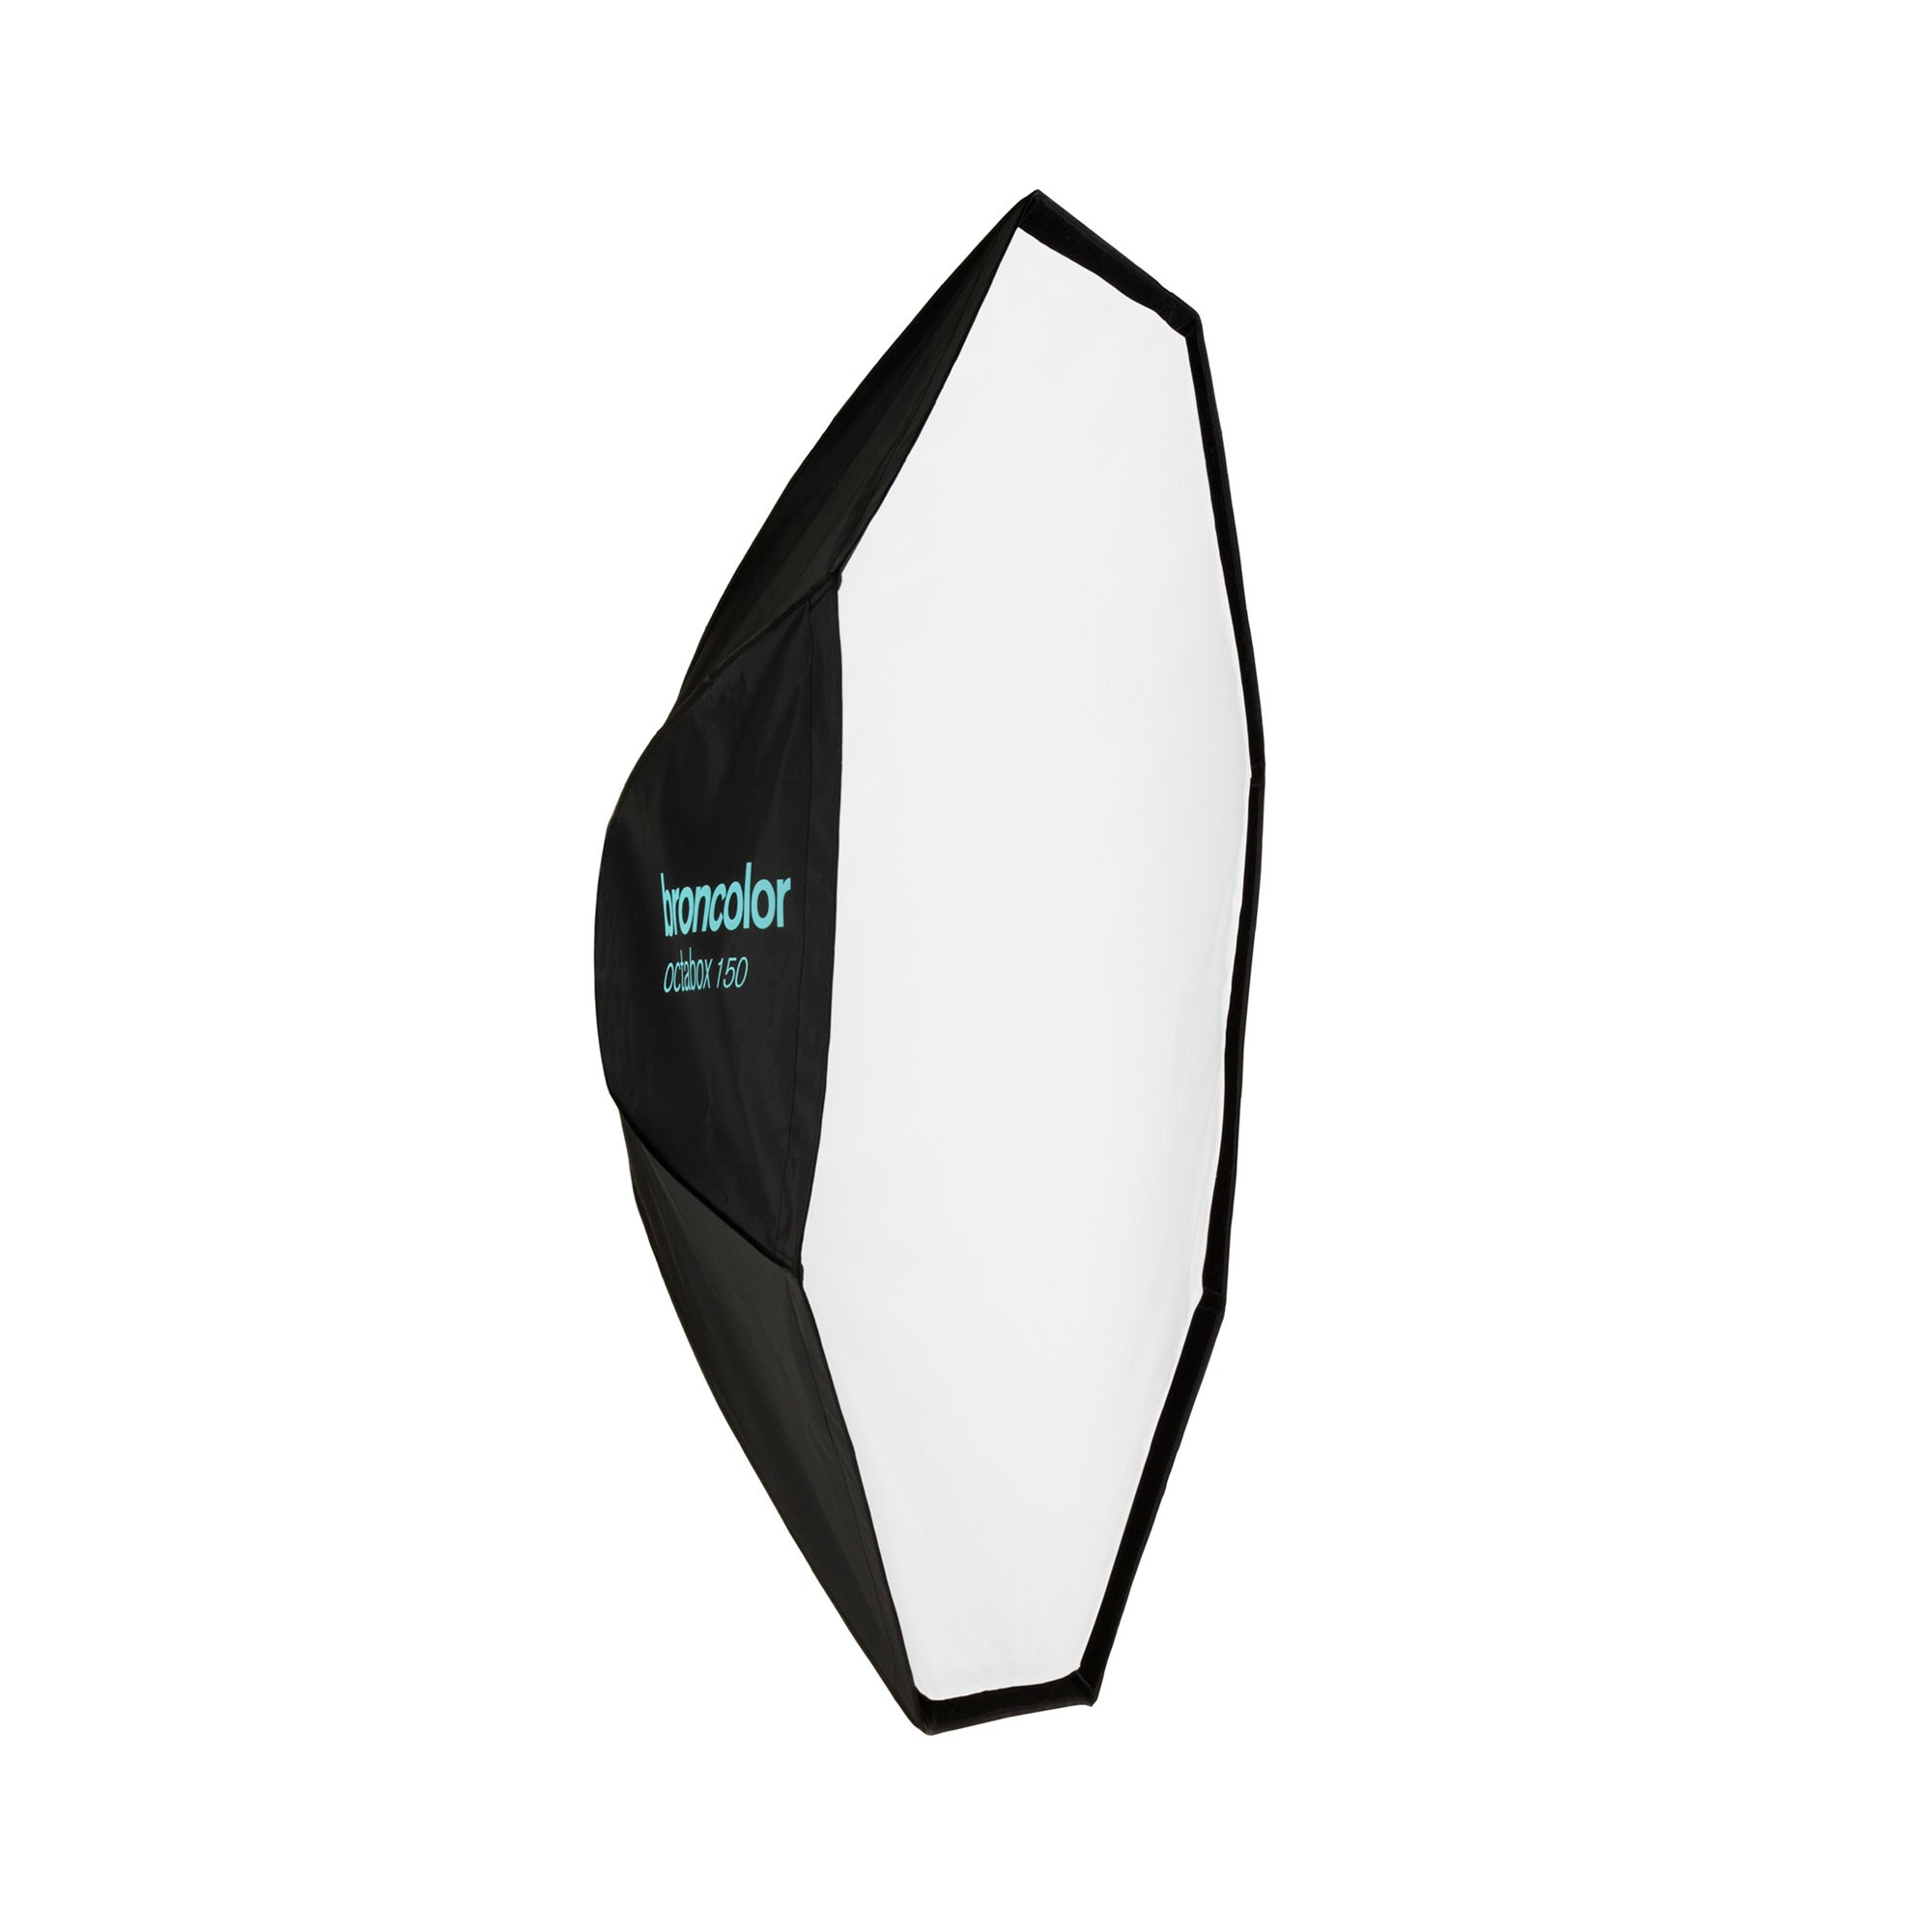 Broncolor Softbox Octa 150 available to rent / verhuur / location at 50.8 Studio • Belgïe, Belgique, Belgium, Broncolor, Huur, Location, Louer, Photo, Rent, Rental, Softbox, Strobe, Studio, Verhuur, Video